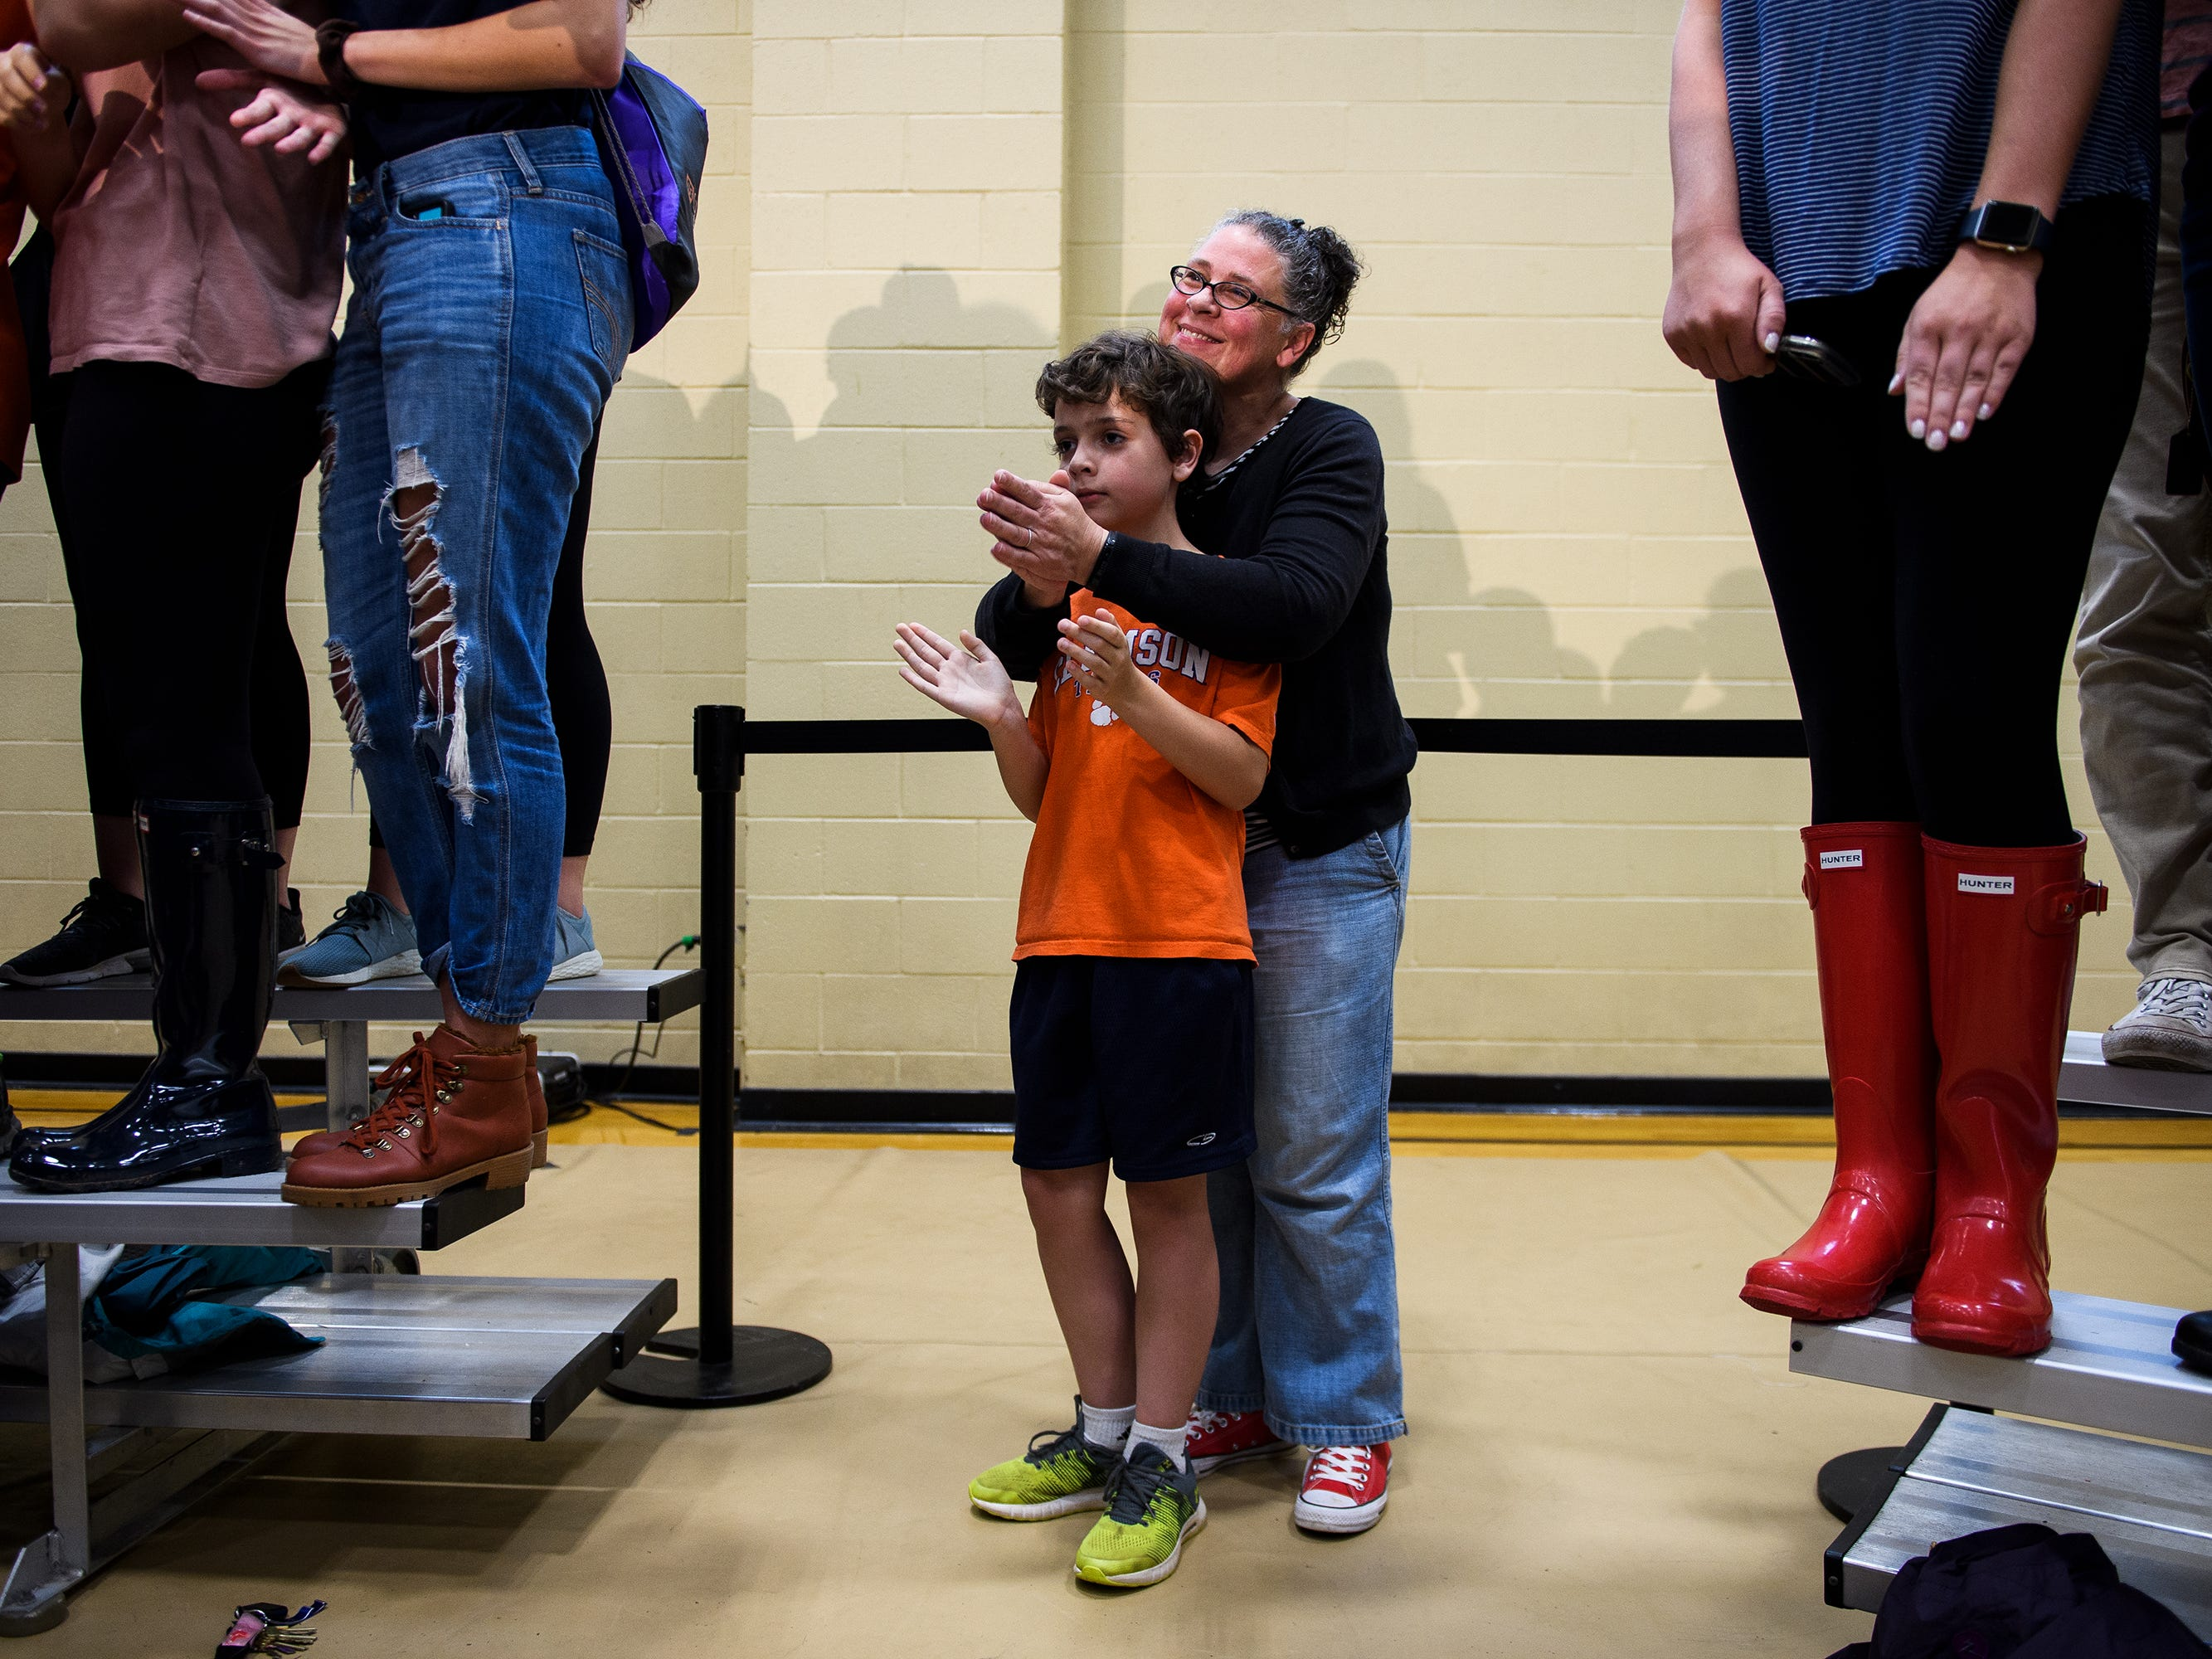 Meghan Mullaney of Clemson and her son Henry Mulholland, 9, list to democratic presidential hopeful Beto O'Rourke speak at a rally at Clemson University's Five Recreation Center Sunday, April 14, 2019.